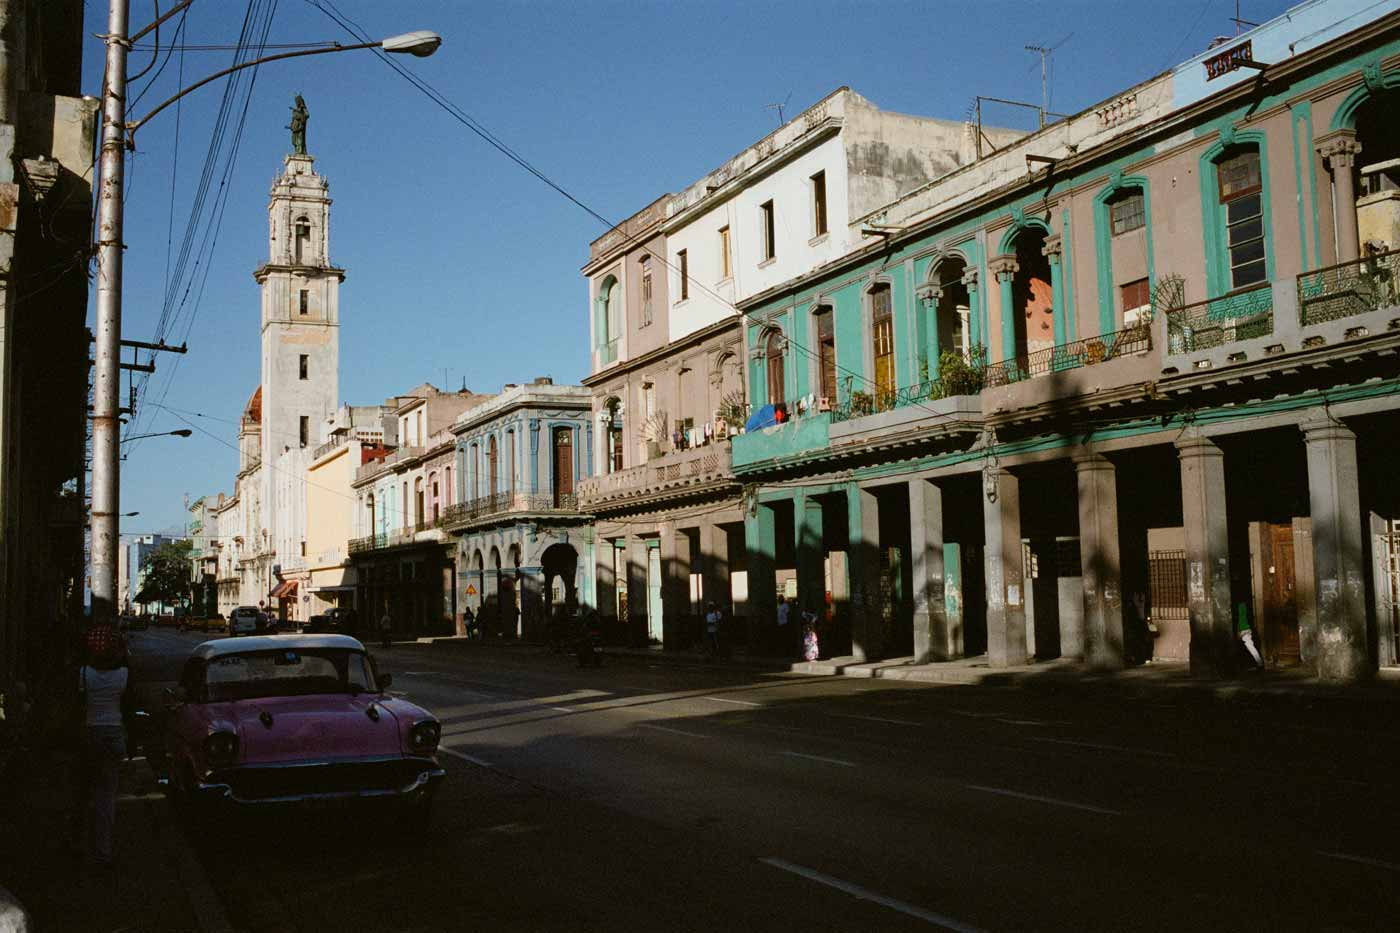 35mm-focal-length-guide-tips-beginner-documentary-story-telling-zone-focus-field-view-perspective-compression-angle-summilux-cuba-havana-film-photography-street-scene